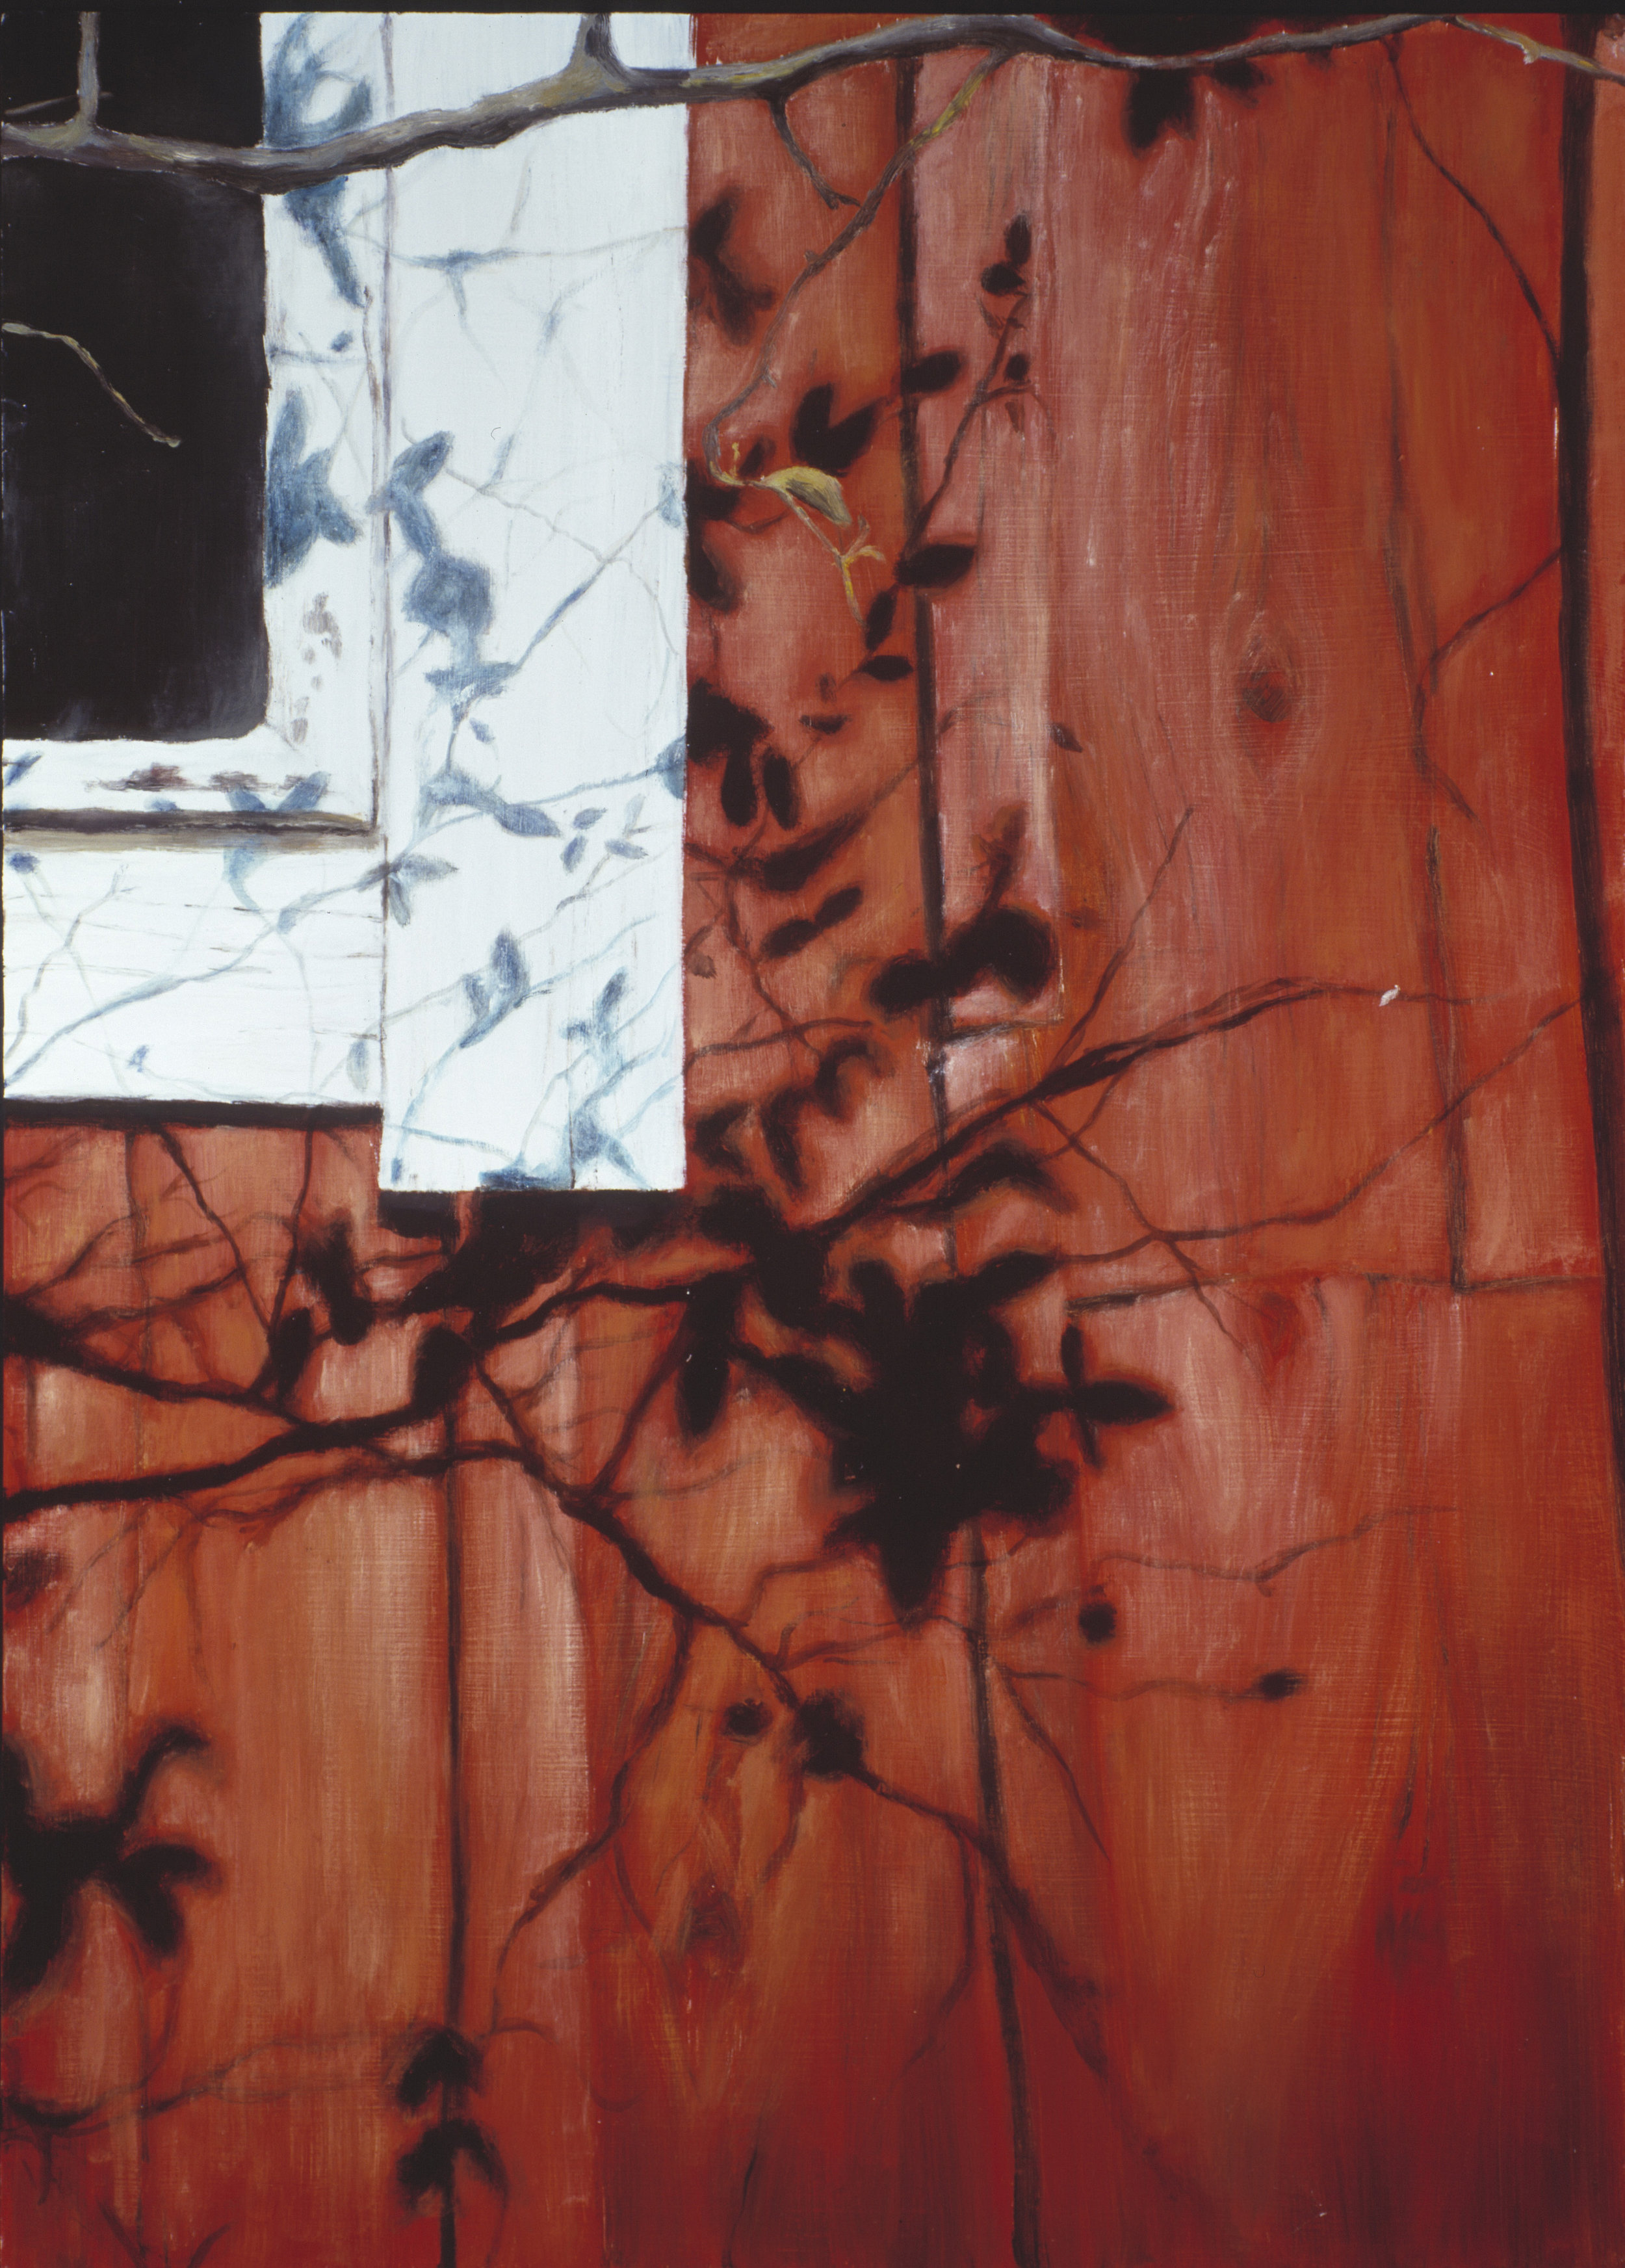 Exterior with red ochre wall  Oil on board  70 x 50 cm  2002